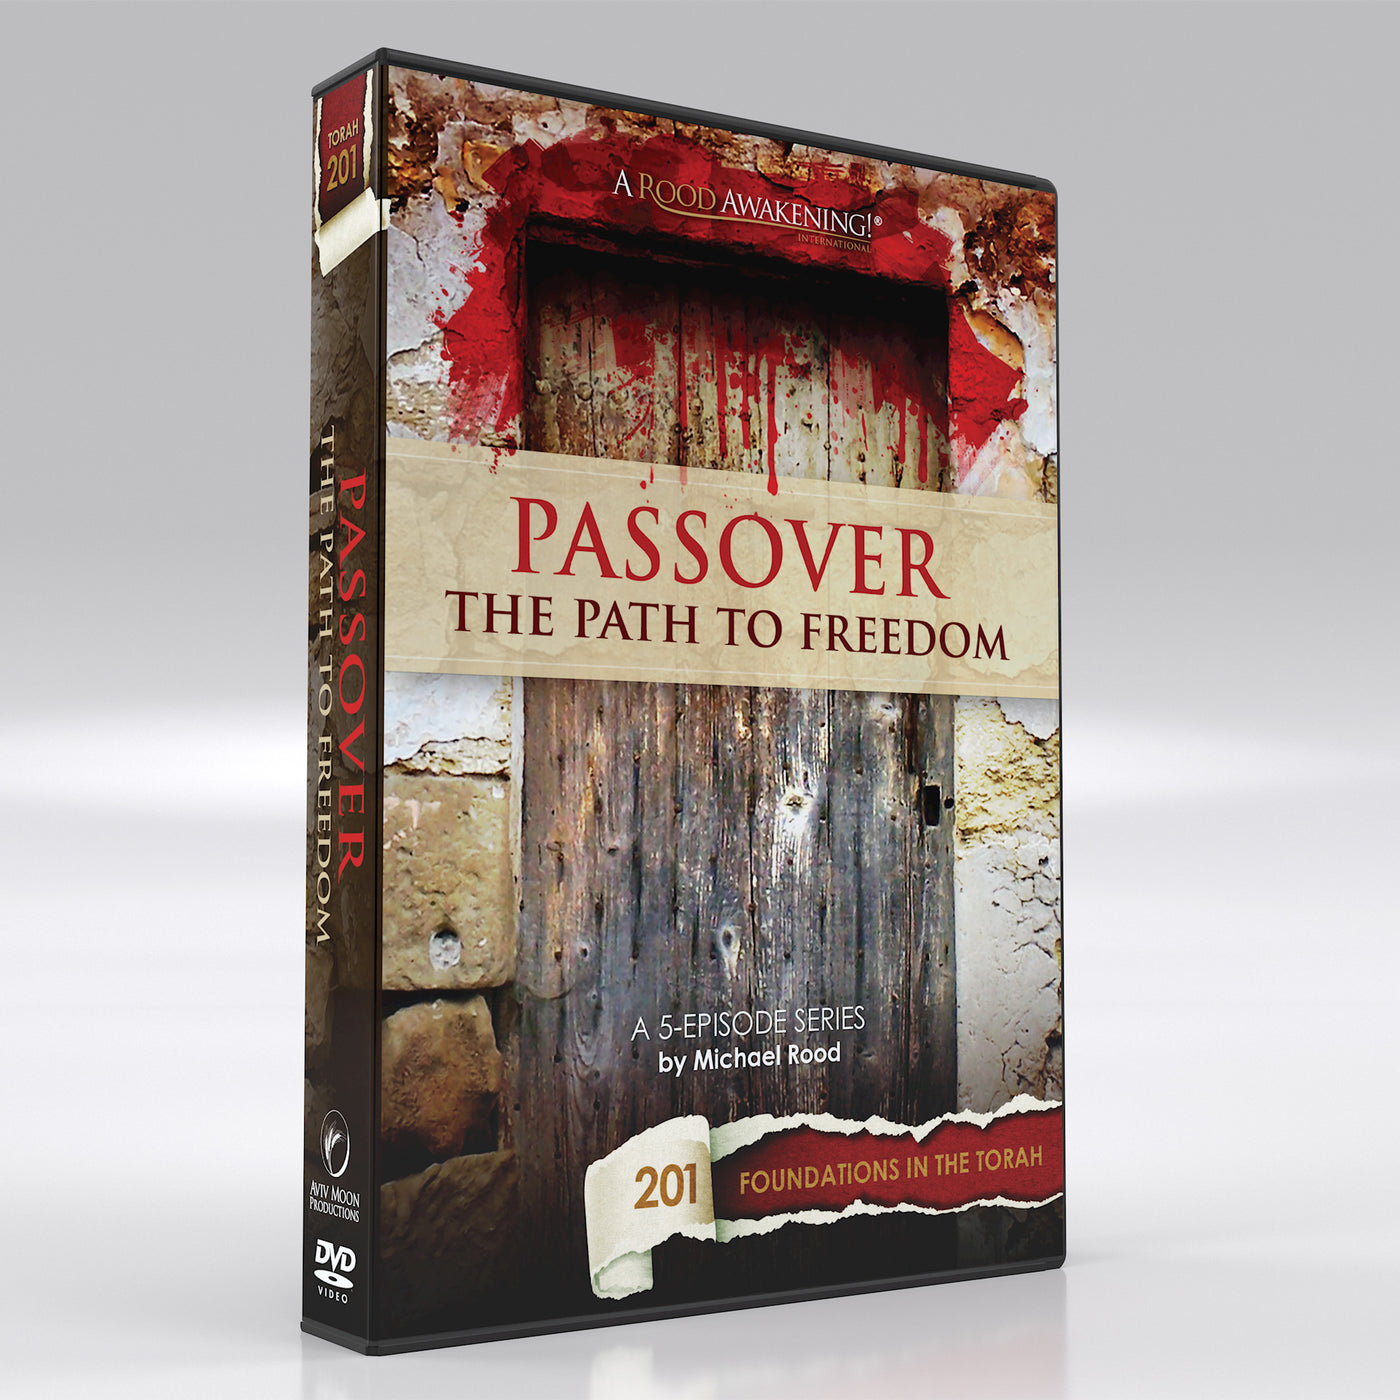 Passover: The Path to Freedom